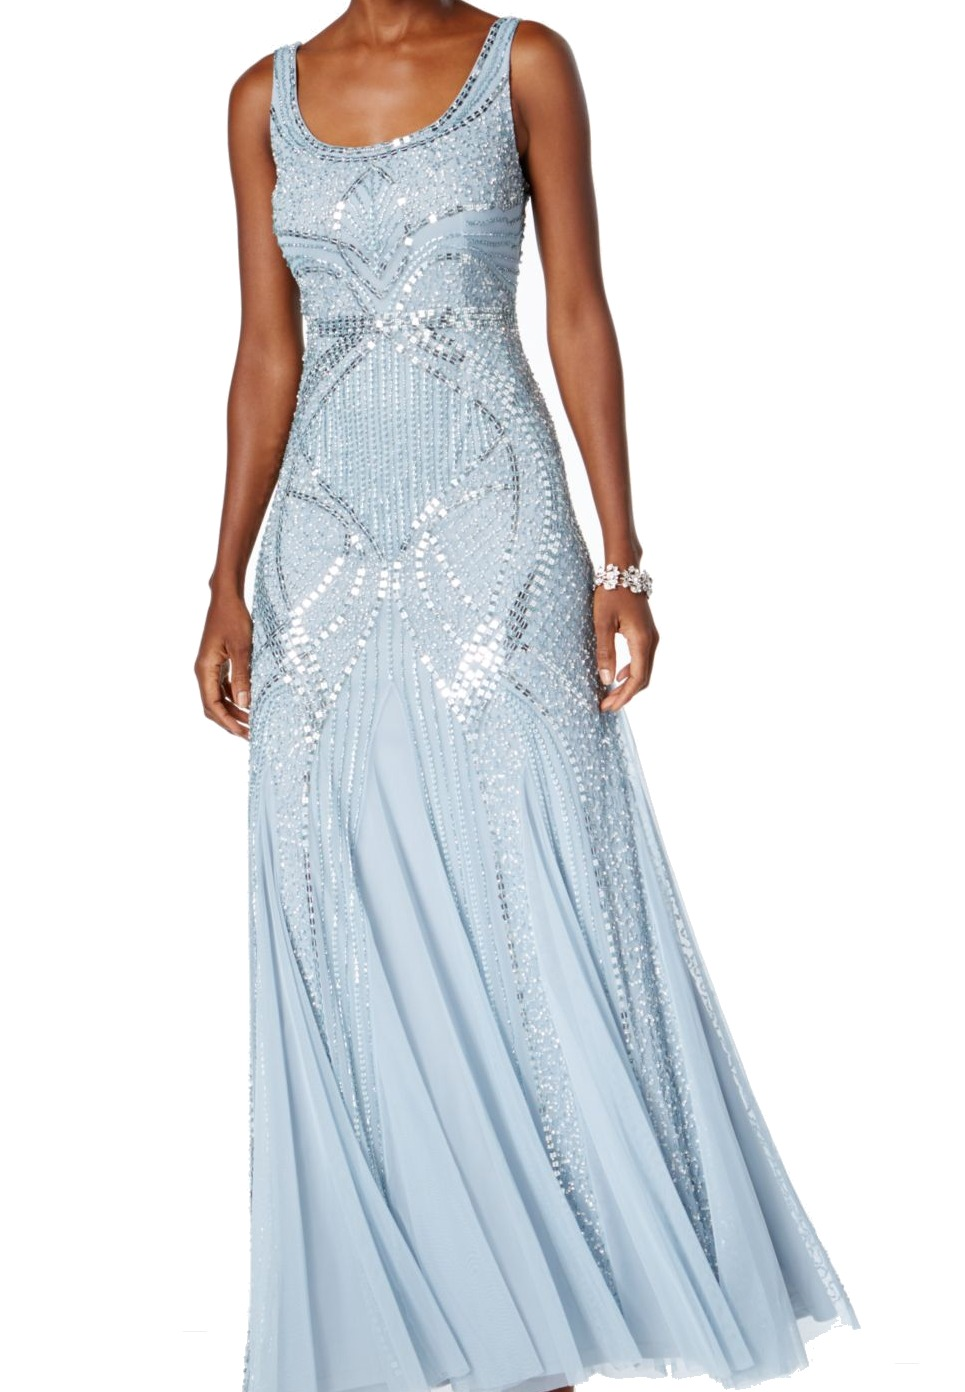 Adrianna Papell NEW Blue Women\'s US Size 12P Petite Prom Gown Dress ...